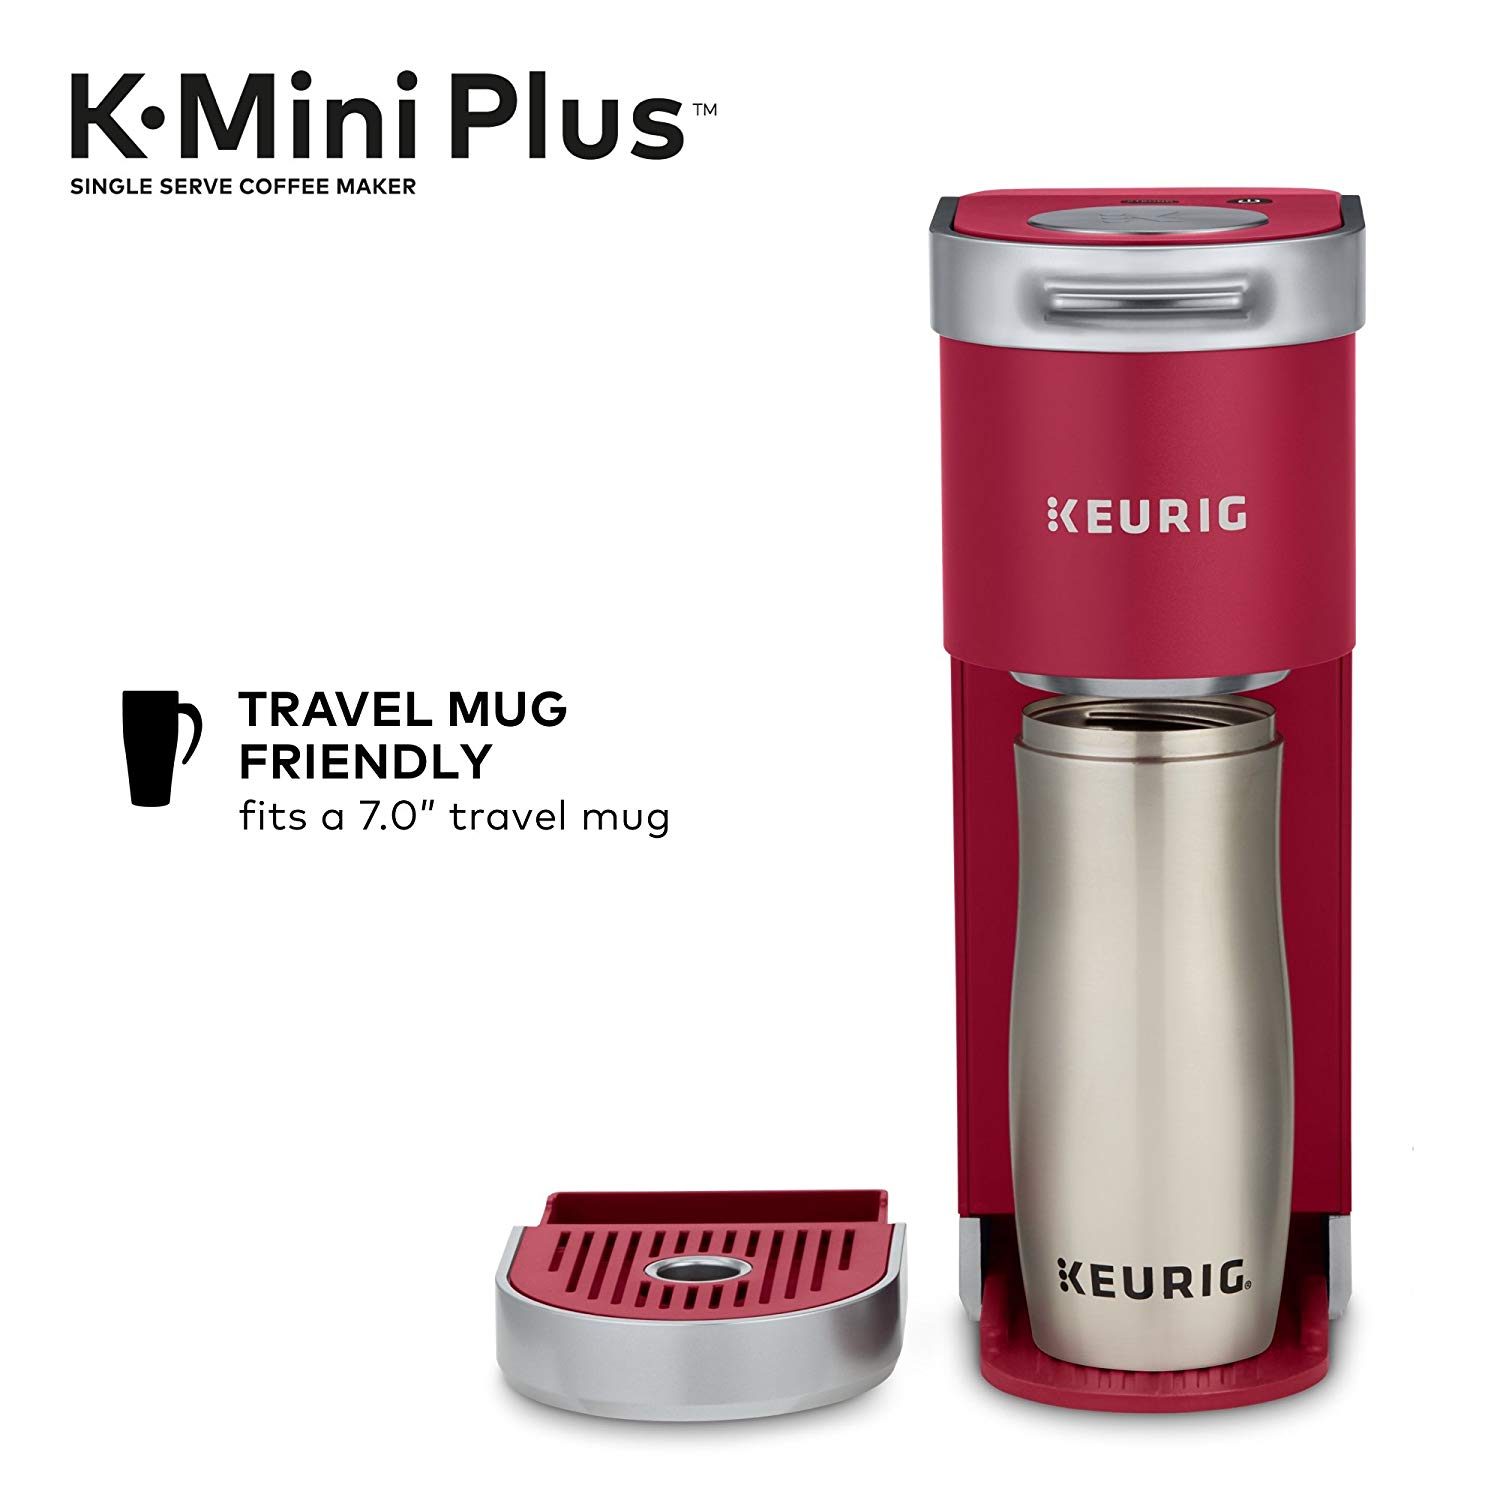 Home Featured Brands Keurig Keurig K Mini Plus